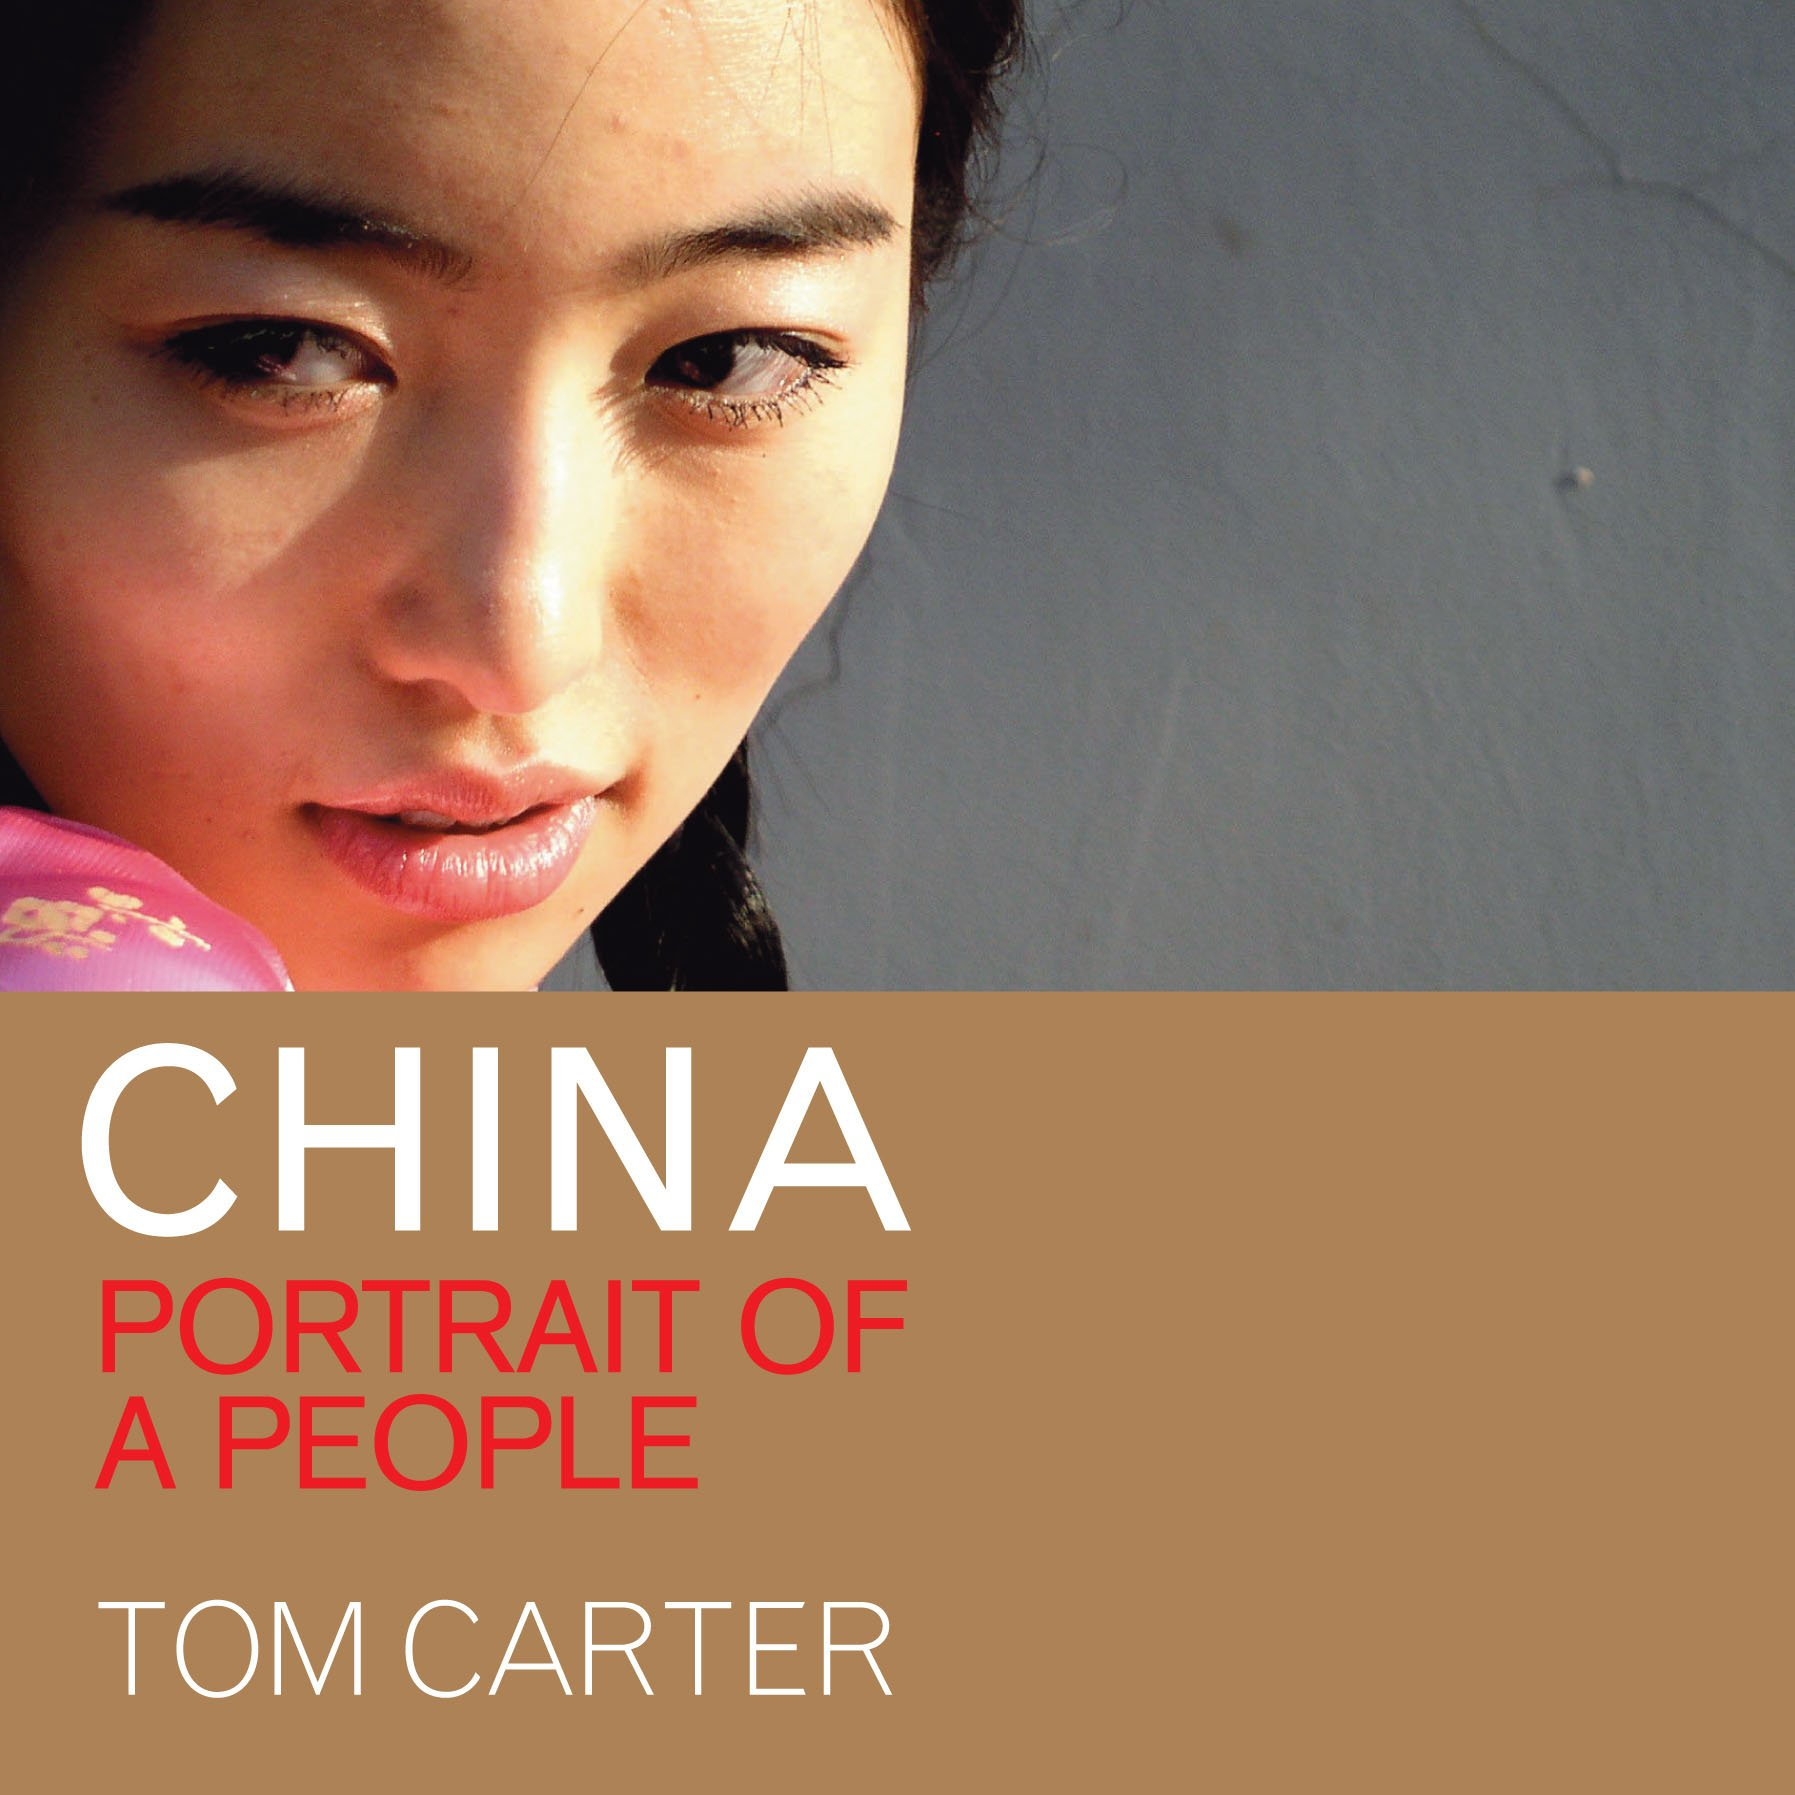 bcc8ab8ba China  Portrait of a People  Tom Carter  9789889979942  Amazon.com ...